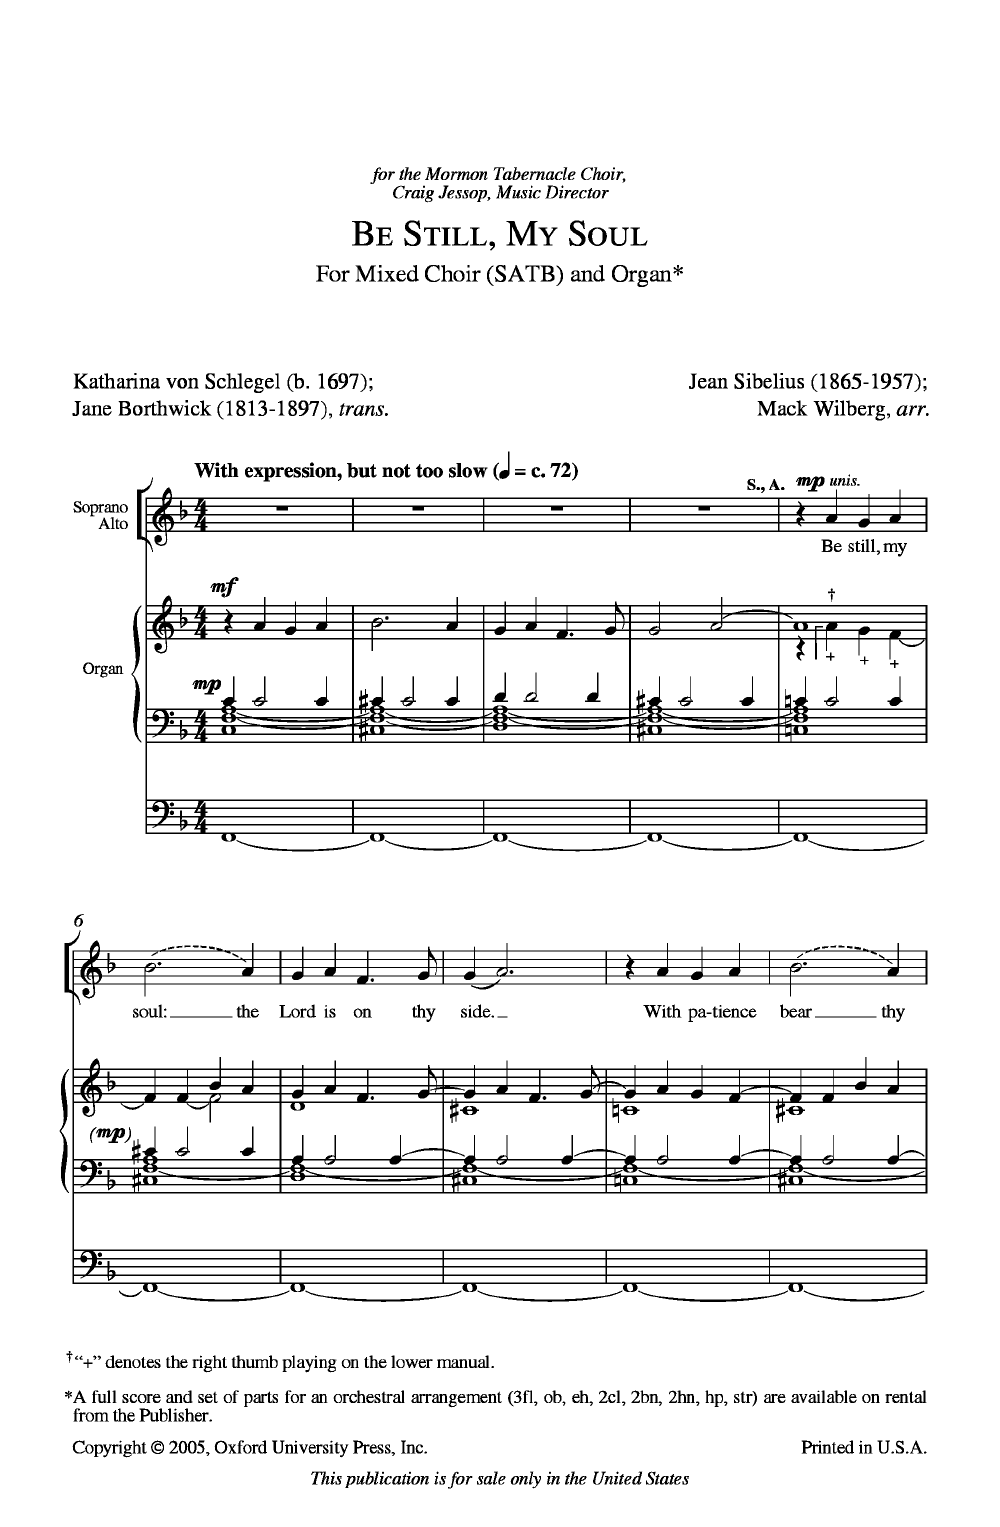 Be Still My Soul (SATB ) by WILBERG, M| J W  Pepper Sheet Music